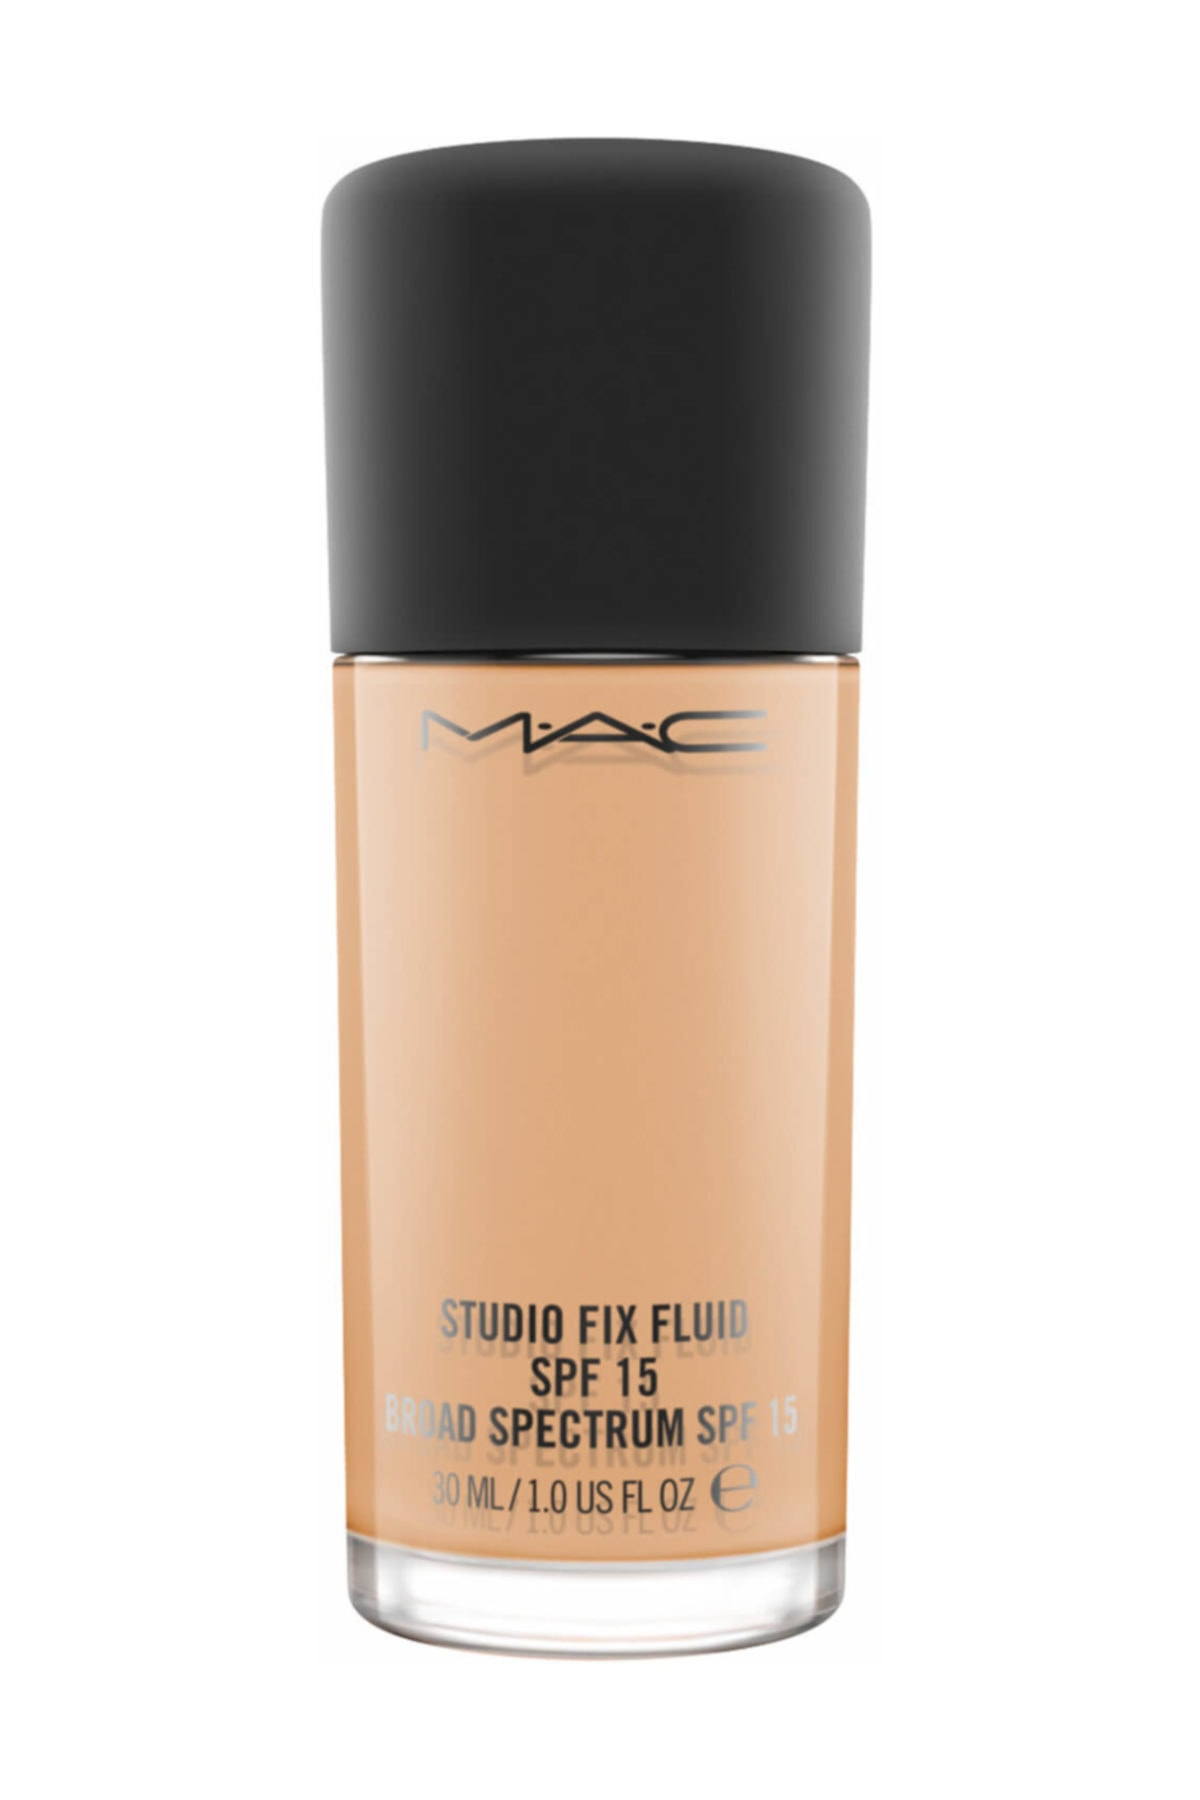 M.A.C Fondöten - Studio Fix Fluid Spf 15 NC26 30 ml 773602289523 1